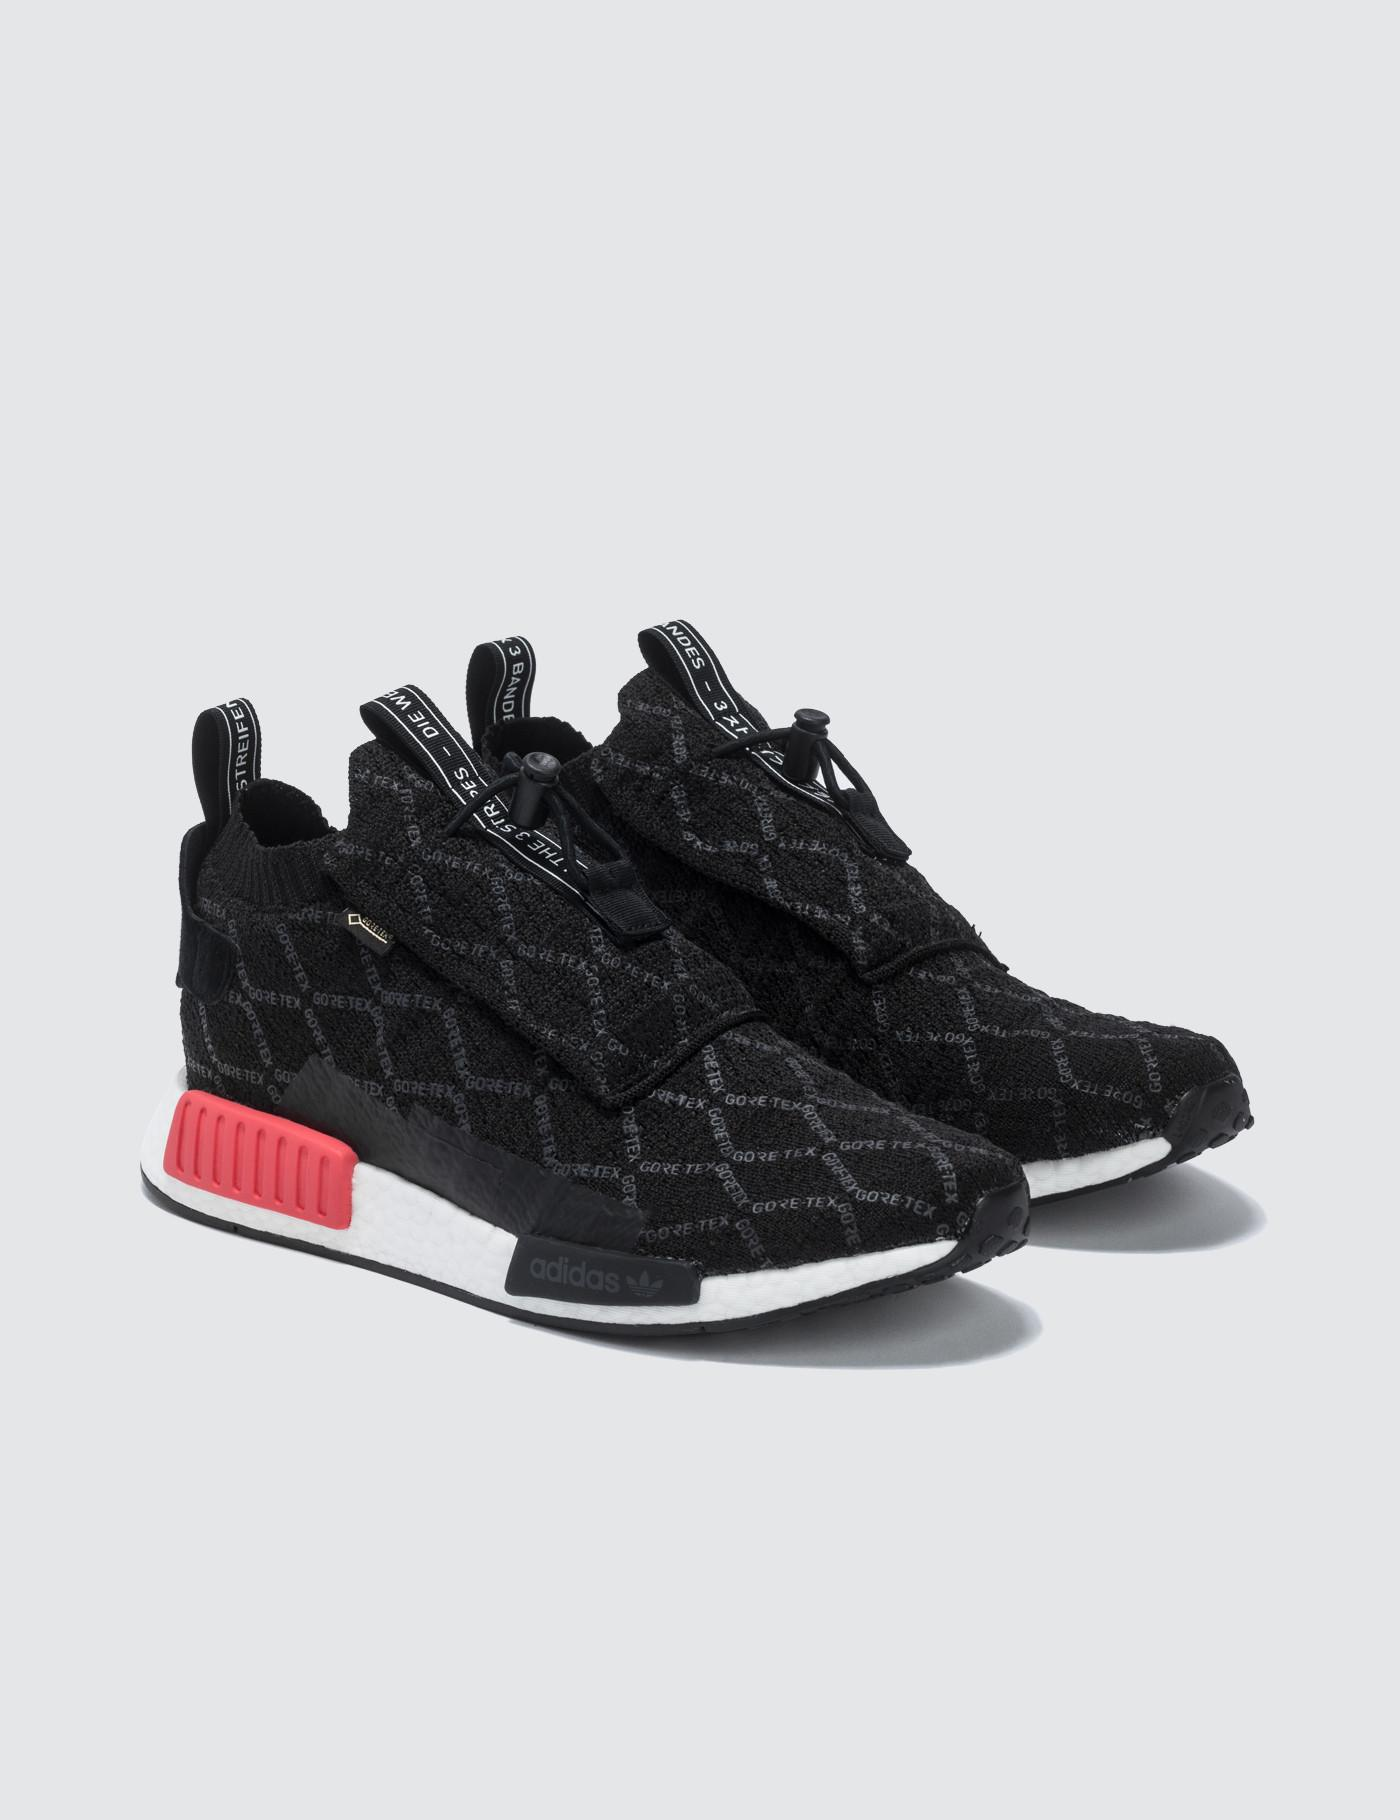 2337cdb36 Adidas Originals - Black Nmd Ts1 Gtx Primeknit for Men - Lyst. View  fullscreen